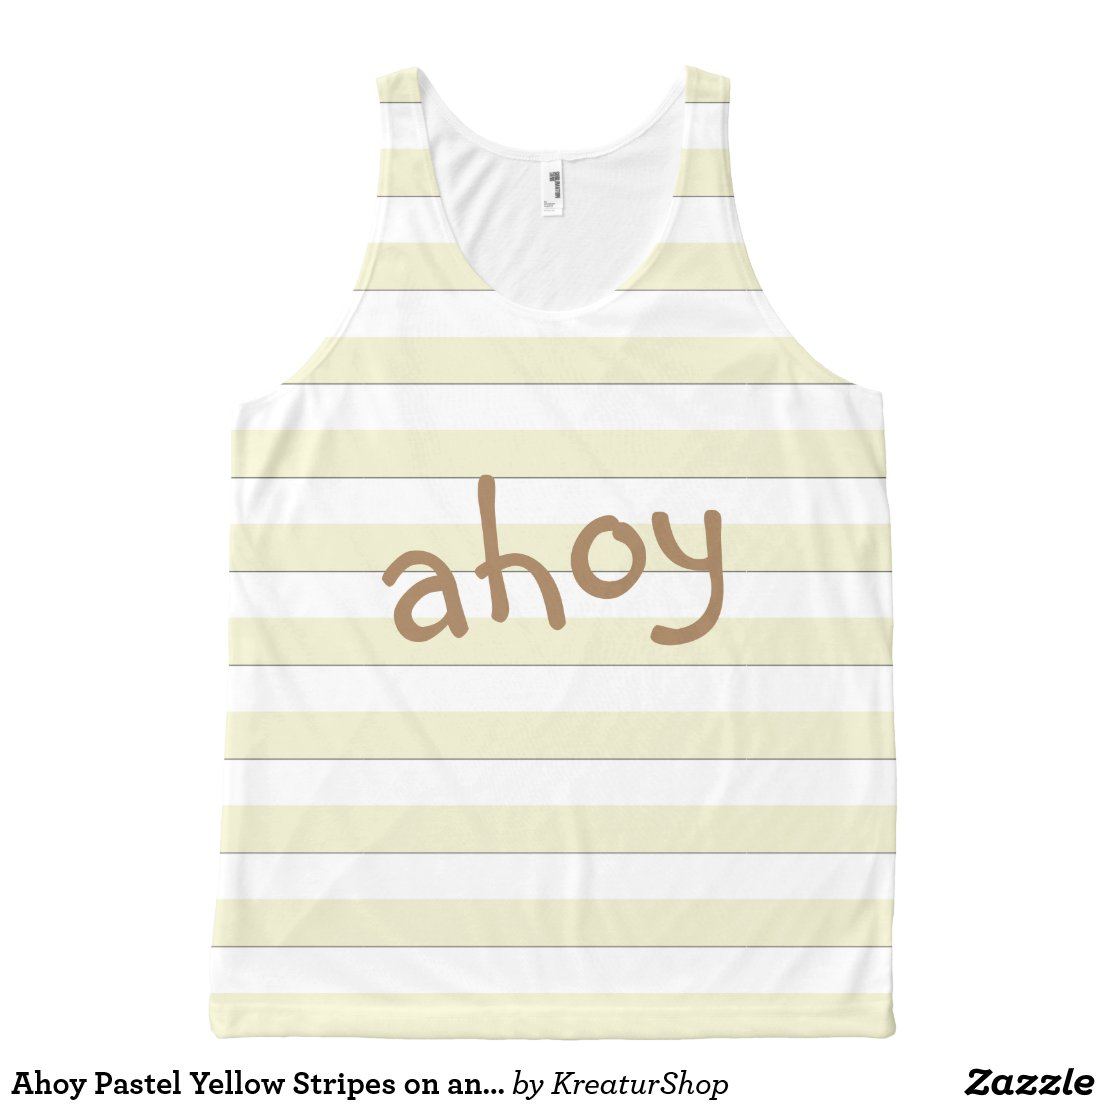 Ahoy Pastel Yellow Stripes on any Color any Text